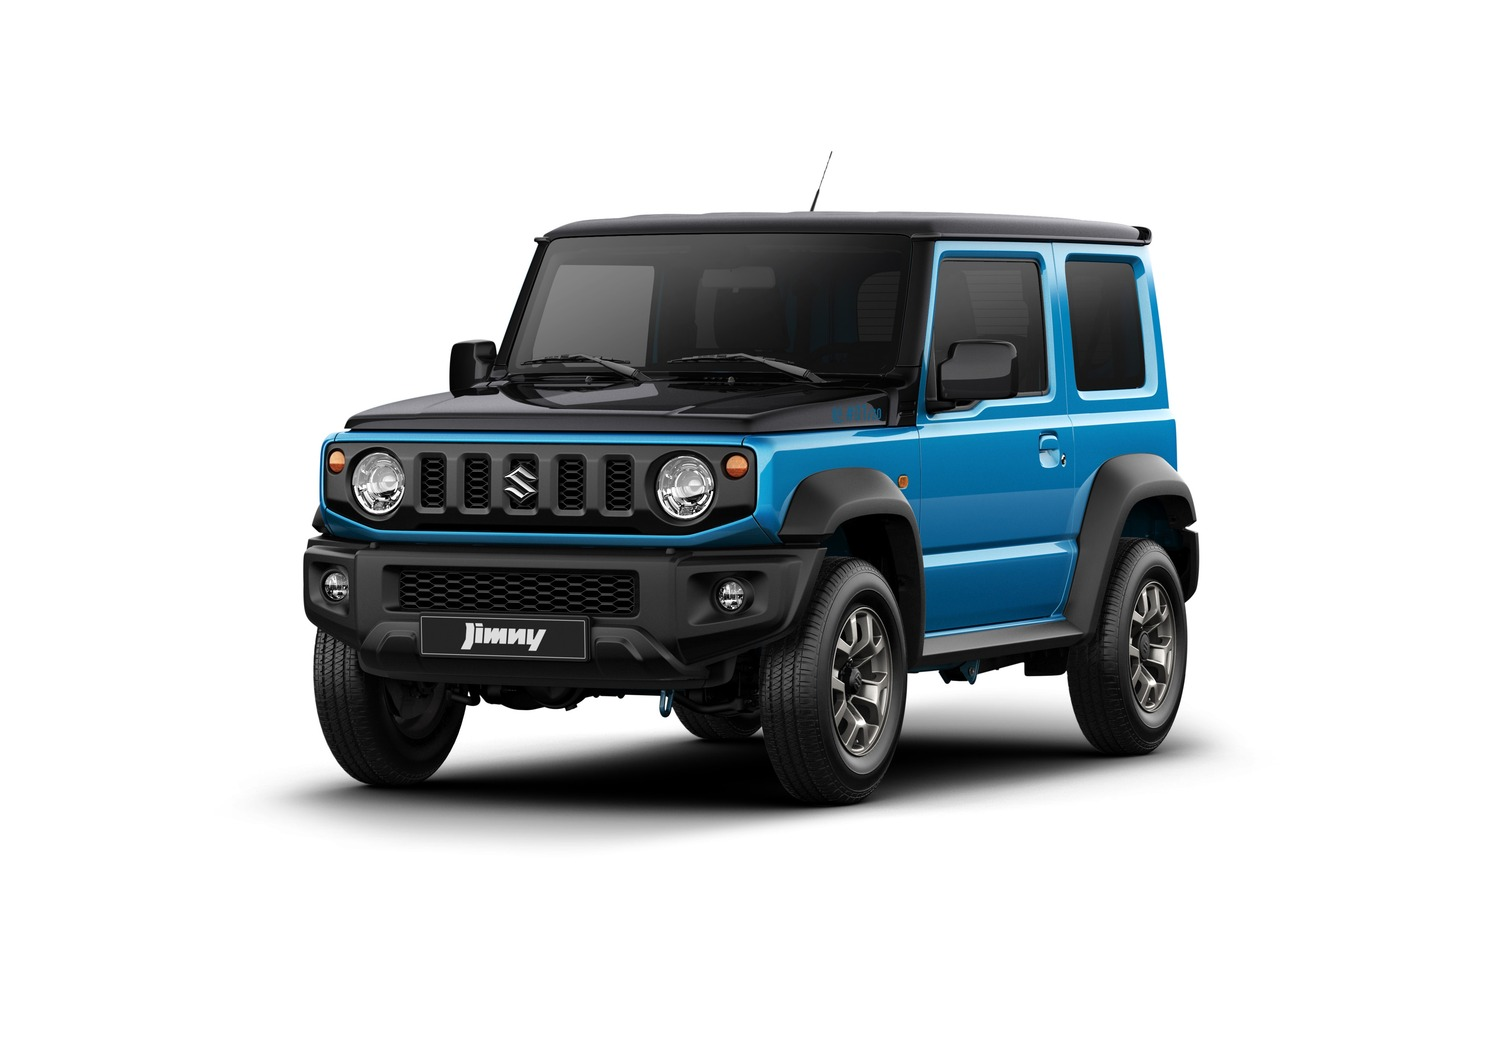 suzuki jimny 2018 debutta in italia con la limited edition sakigake news. Black Bedroom Furniture Sets. Home Design Ideas